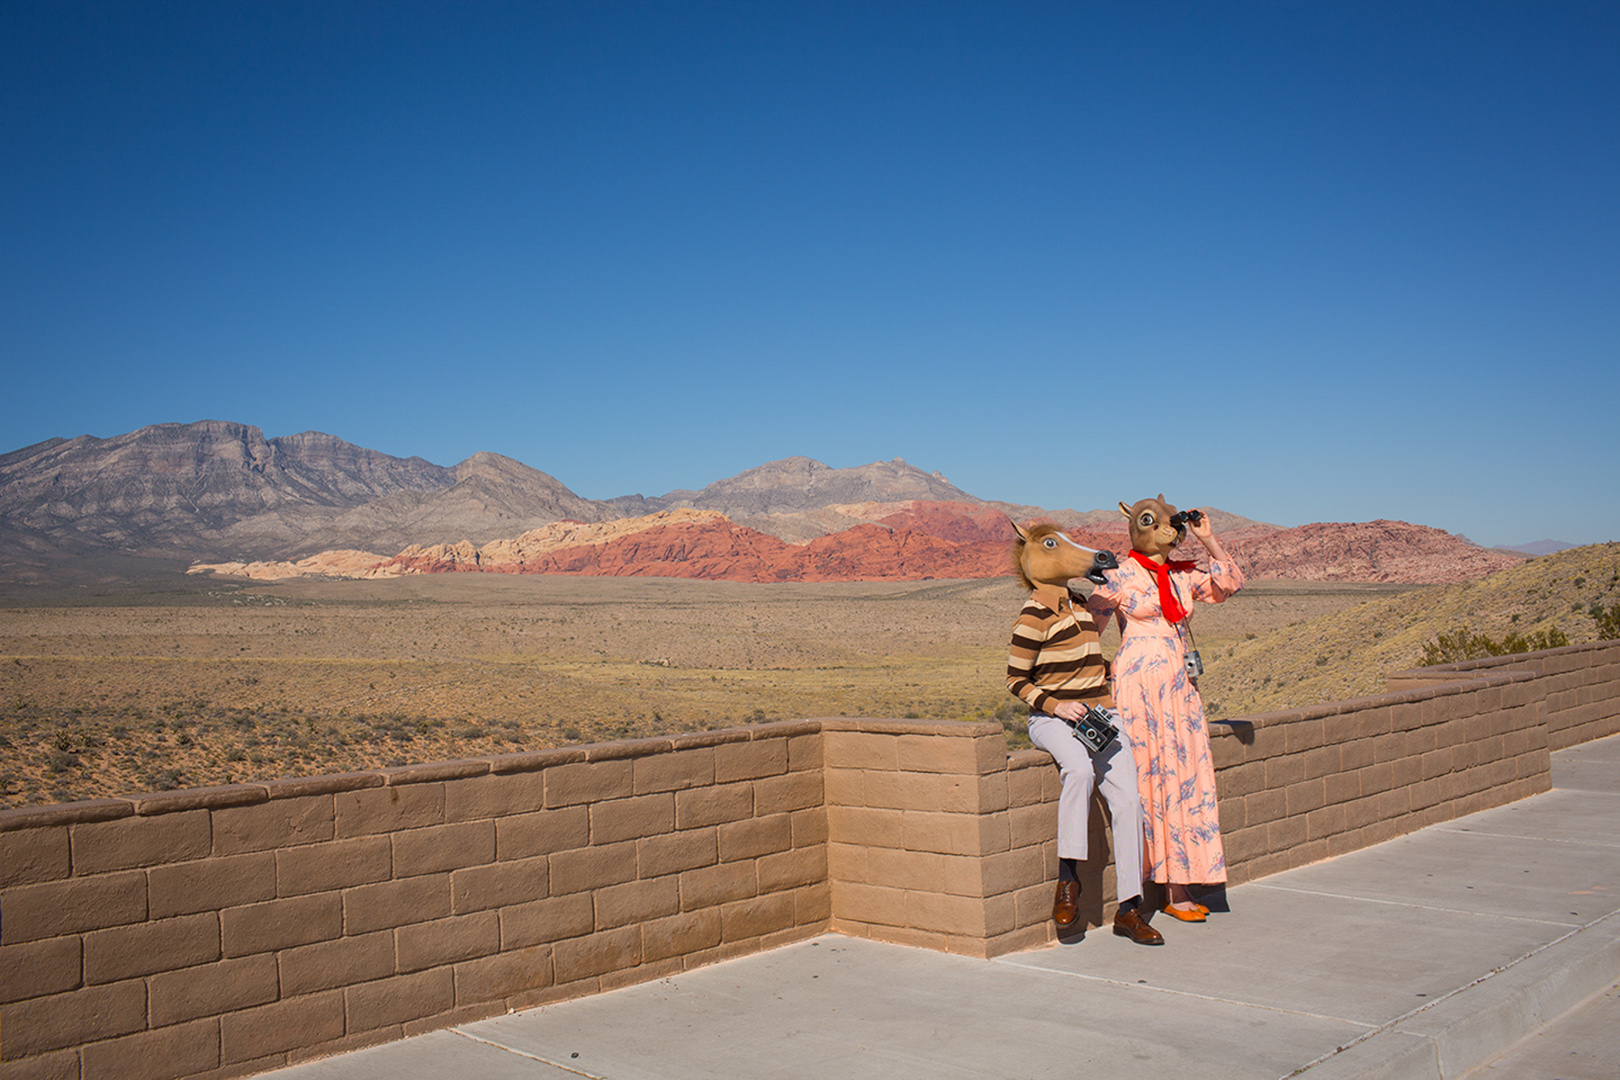 035 – Red_Rock_Canyon-1_rt